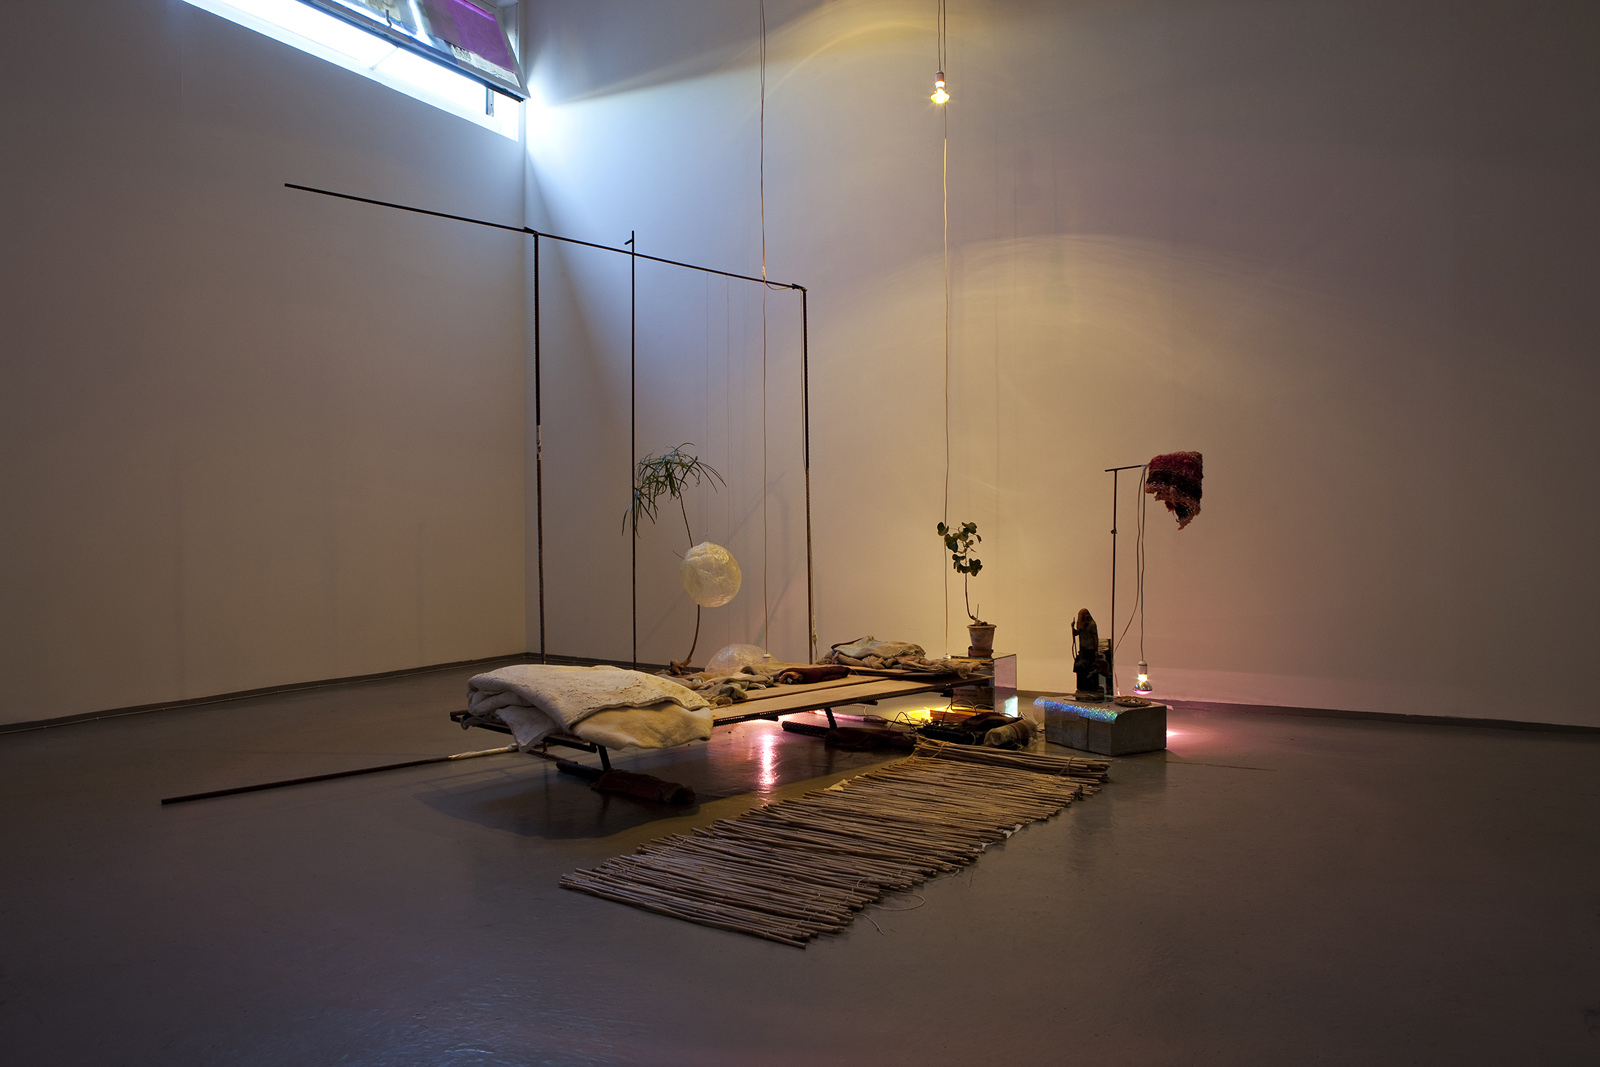 Civilization and its Discontents, 2010, painted steel, knitting, textiles, mirror, disco spots, concrete, pc + projector, loudspeakers, ceramic, plants, incense, cigarette butts, lamb sheet, bamboo, paper, folie, 3D print